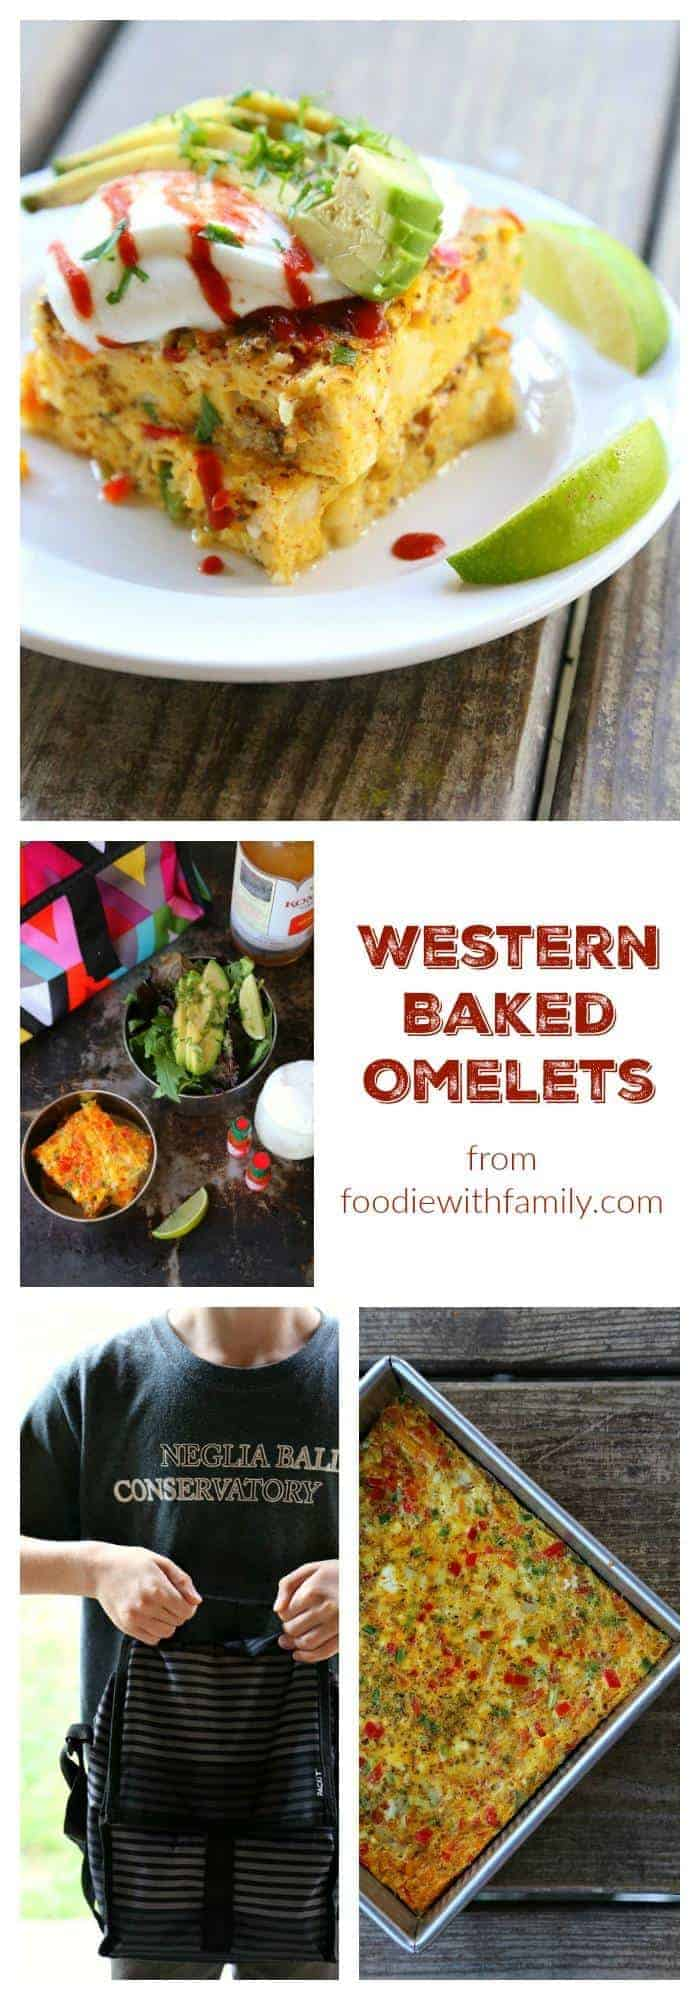 Western Baked Omelet from foodiewithfamily.com #PackItCool #sponsored